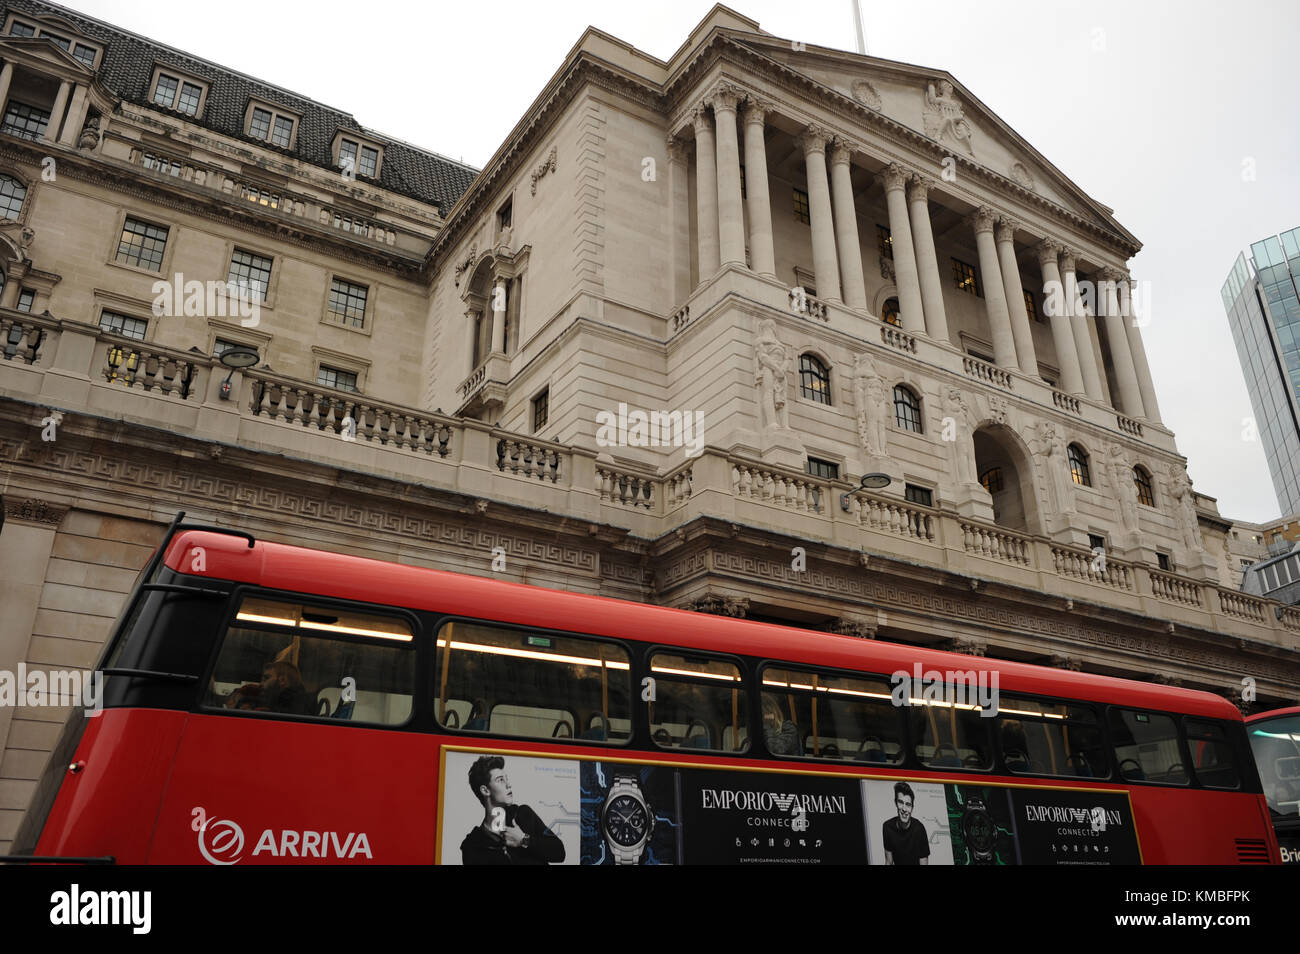 A bus goes past the Bank of England on Threadneedle Street in London - Stock Image